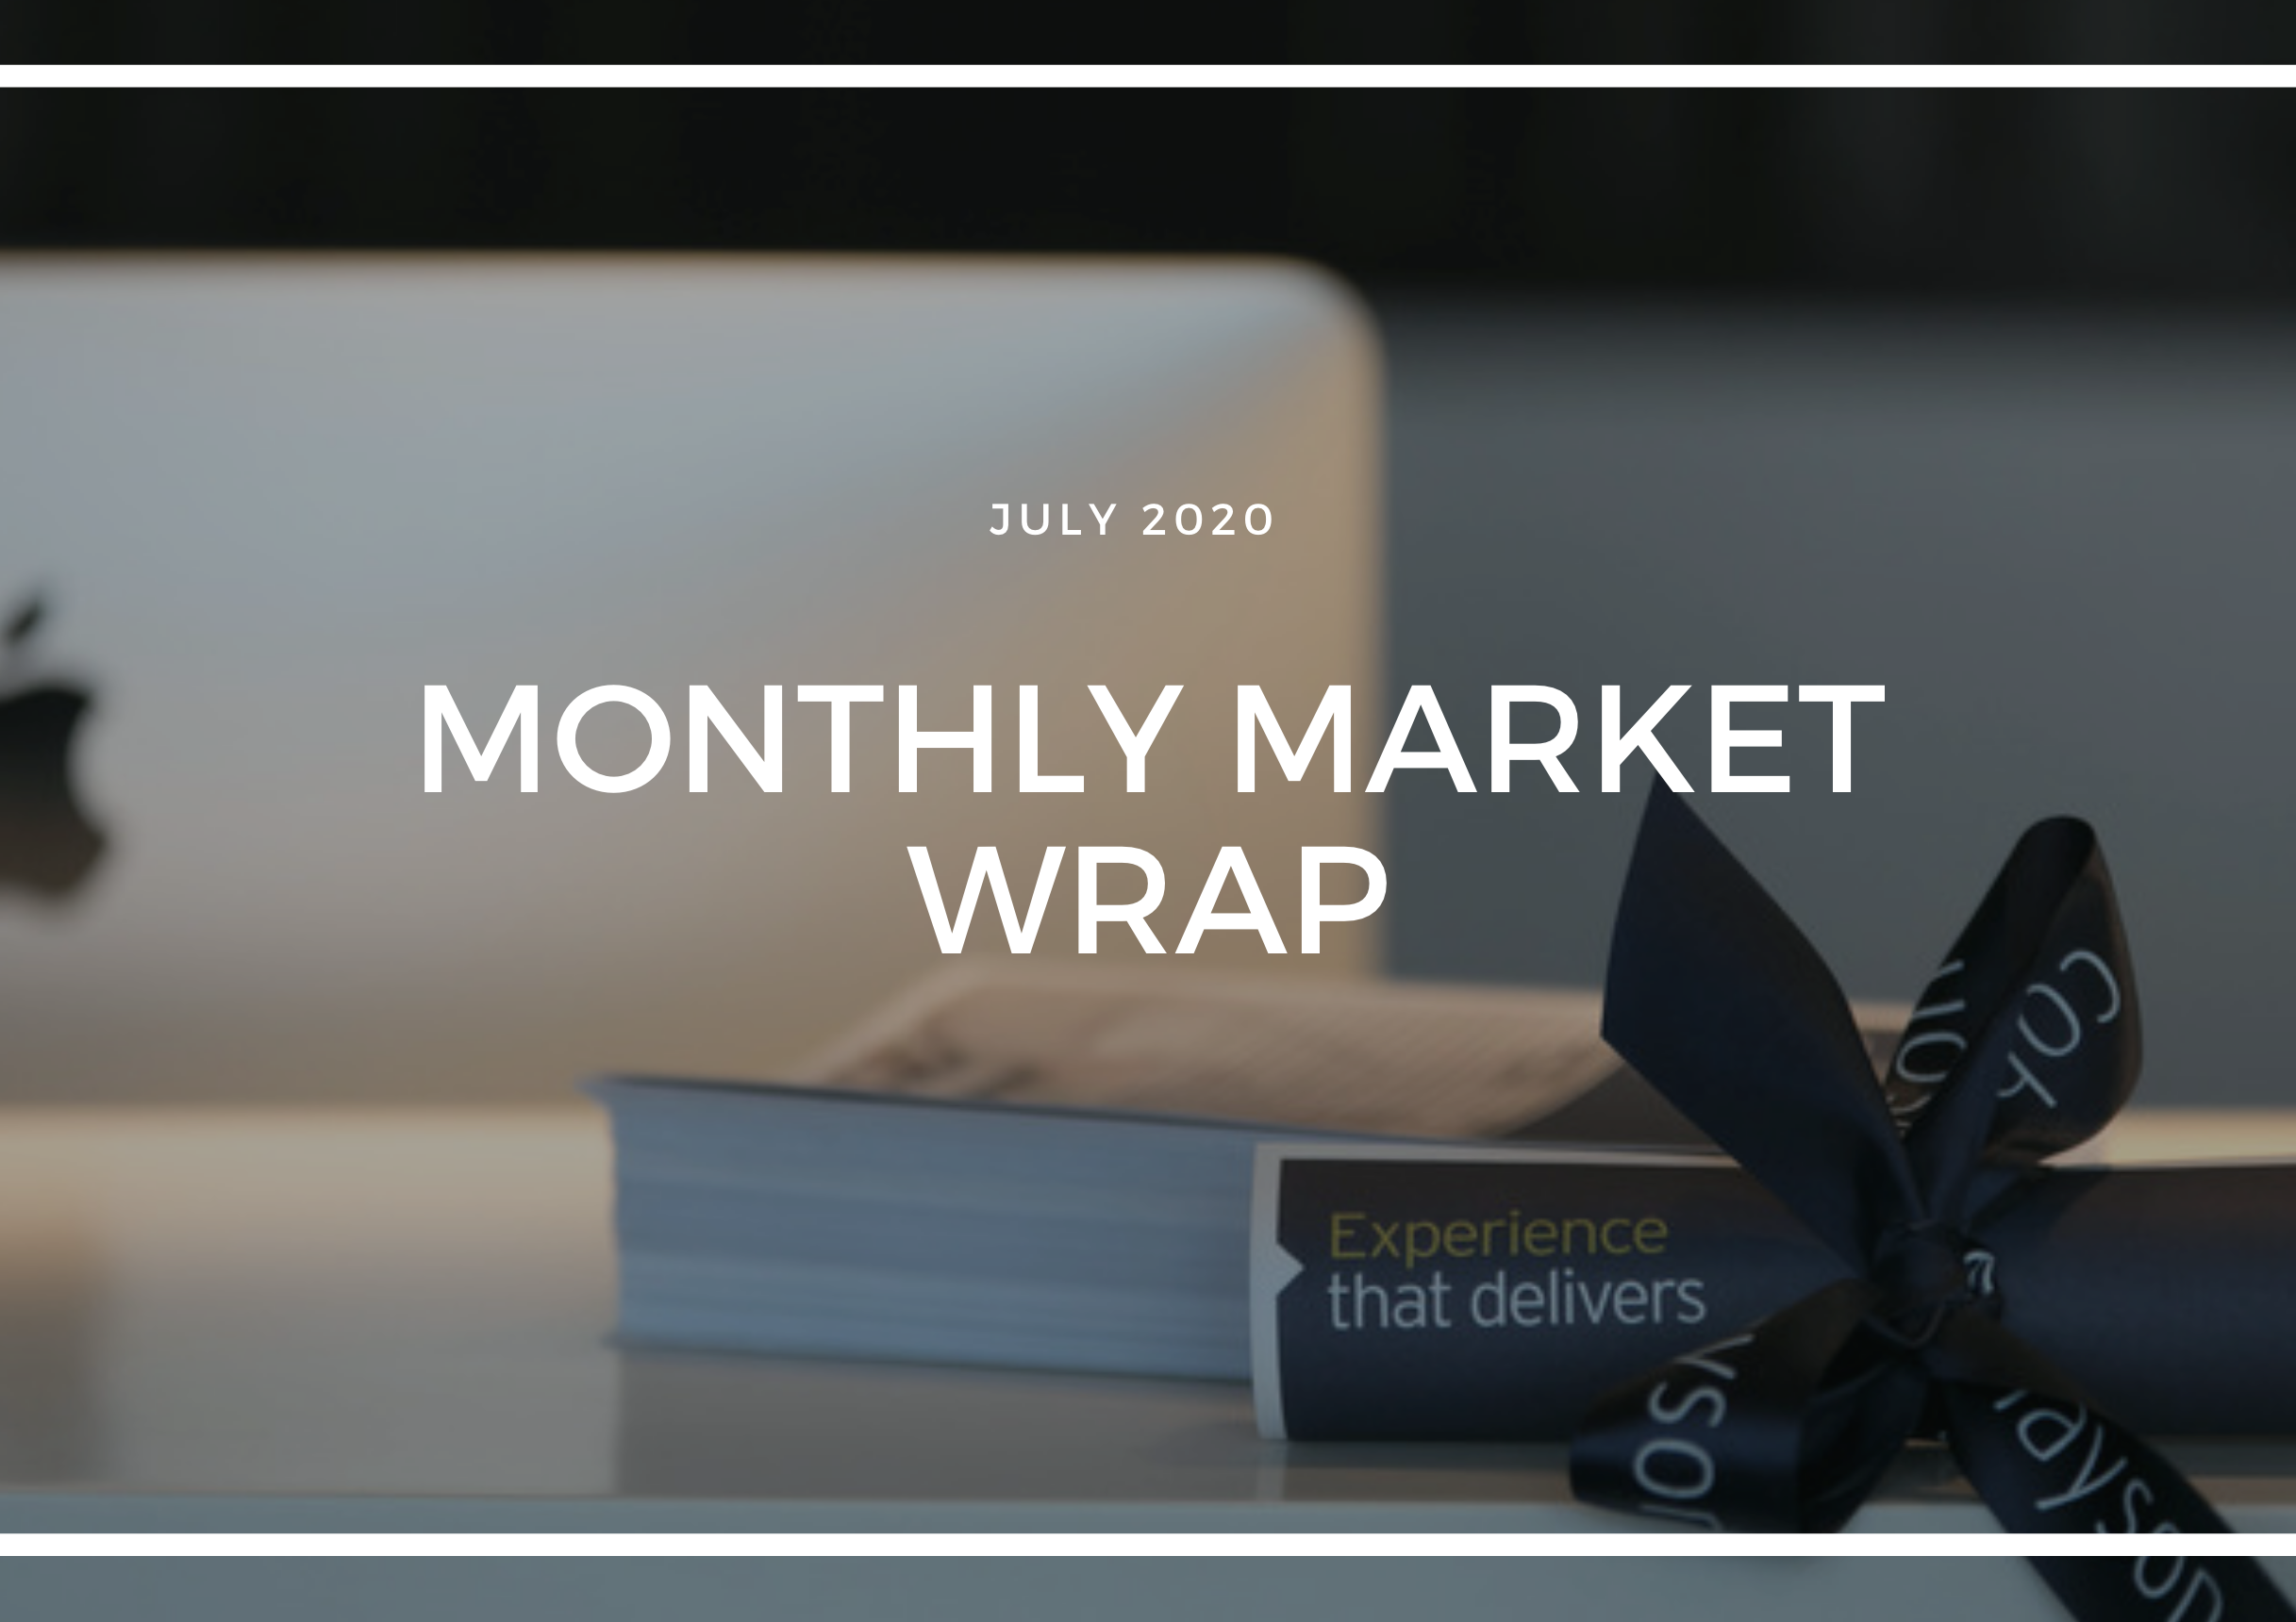 MONTHLY MARKET WRAP - JULY 2020